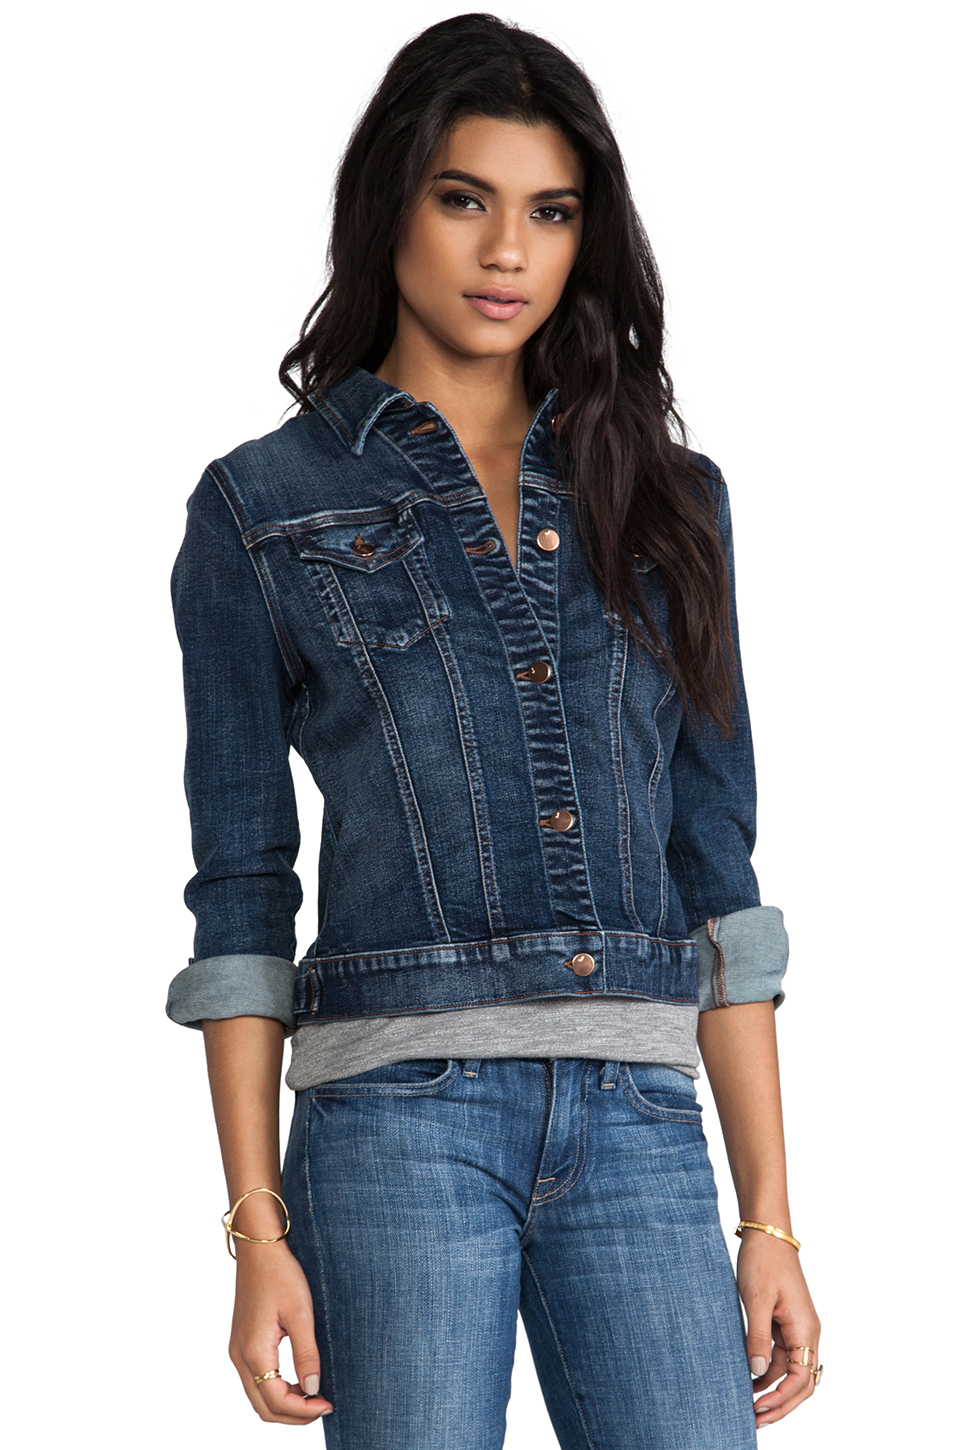 J Brand Distress Jacket in Devotion from REVOLVEclothing.com